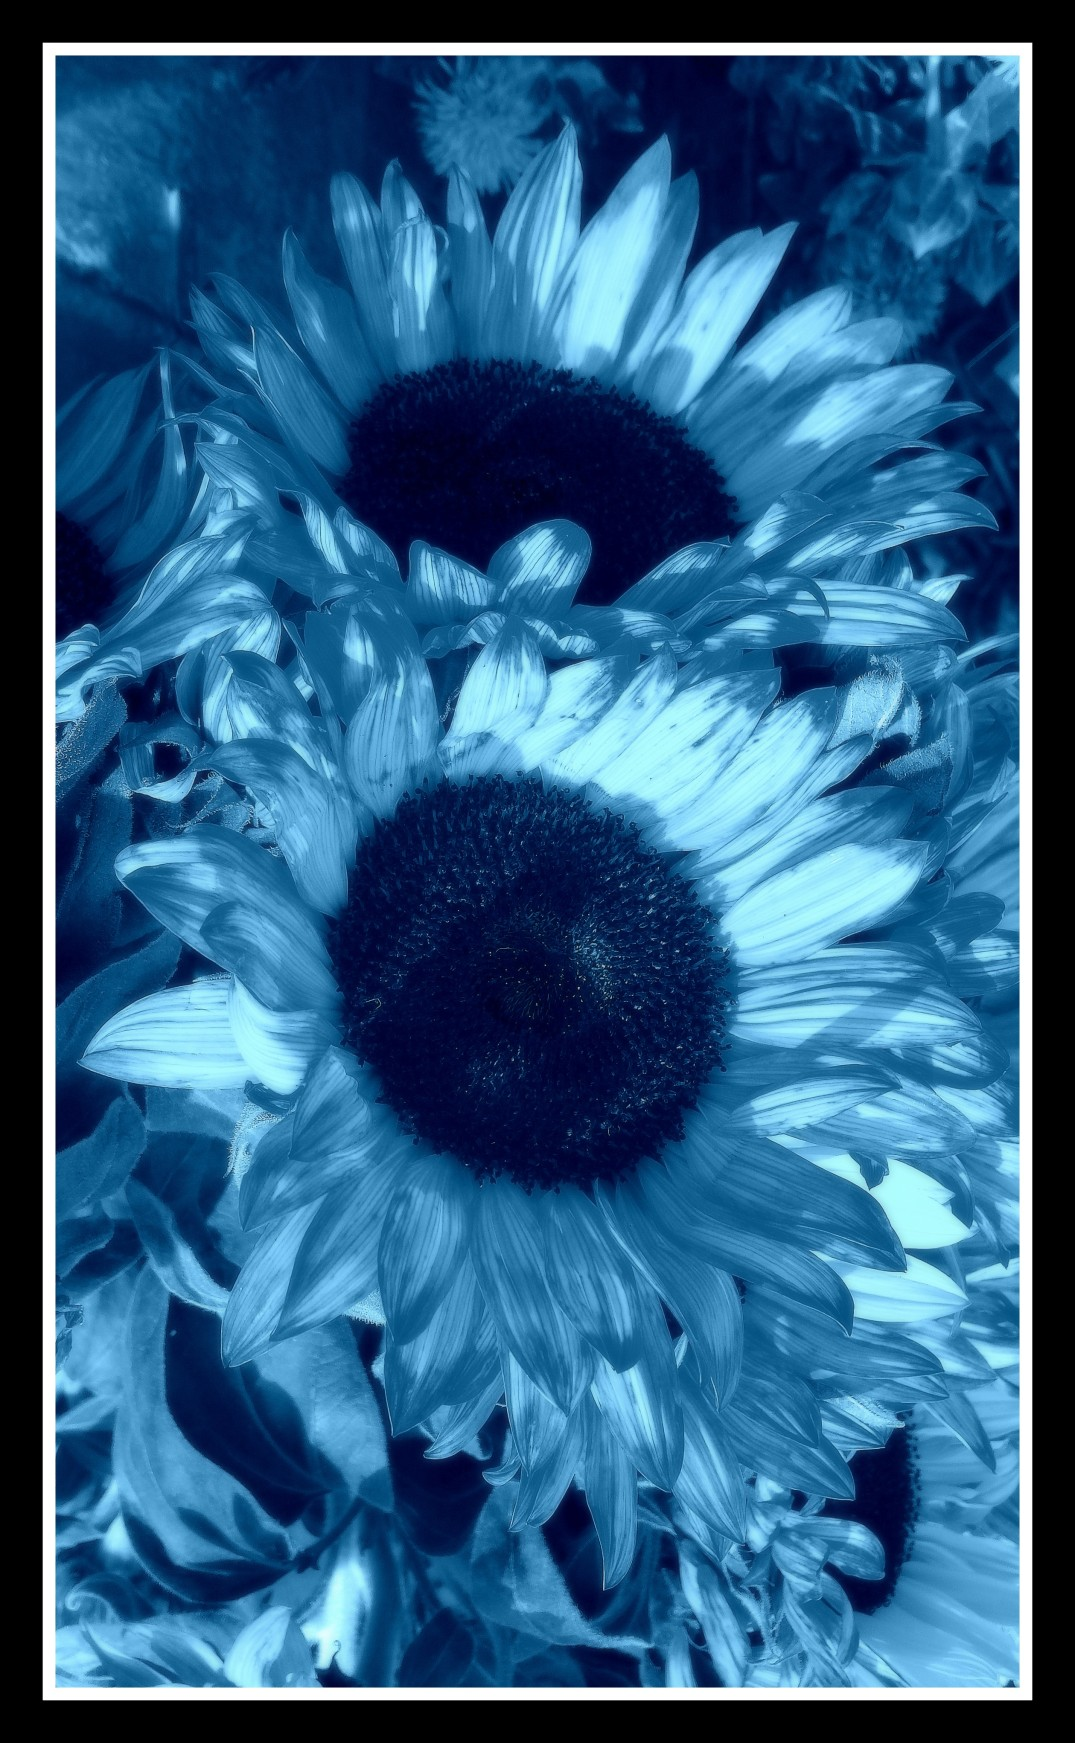 2015-06-10 S4 742 Blue Urban Flowers sunflower framed